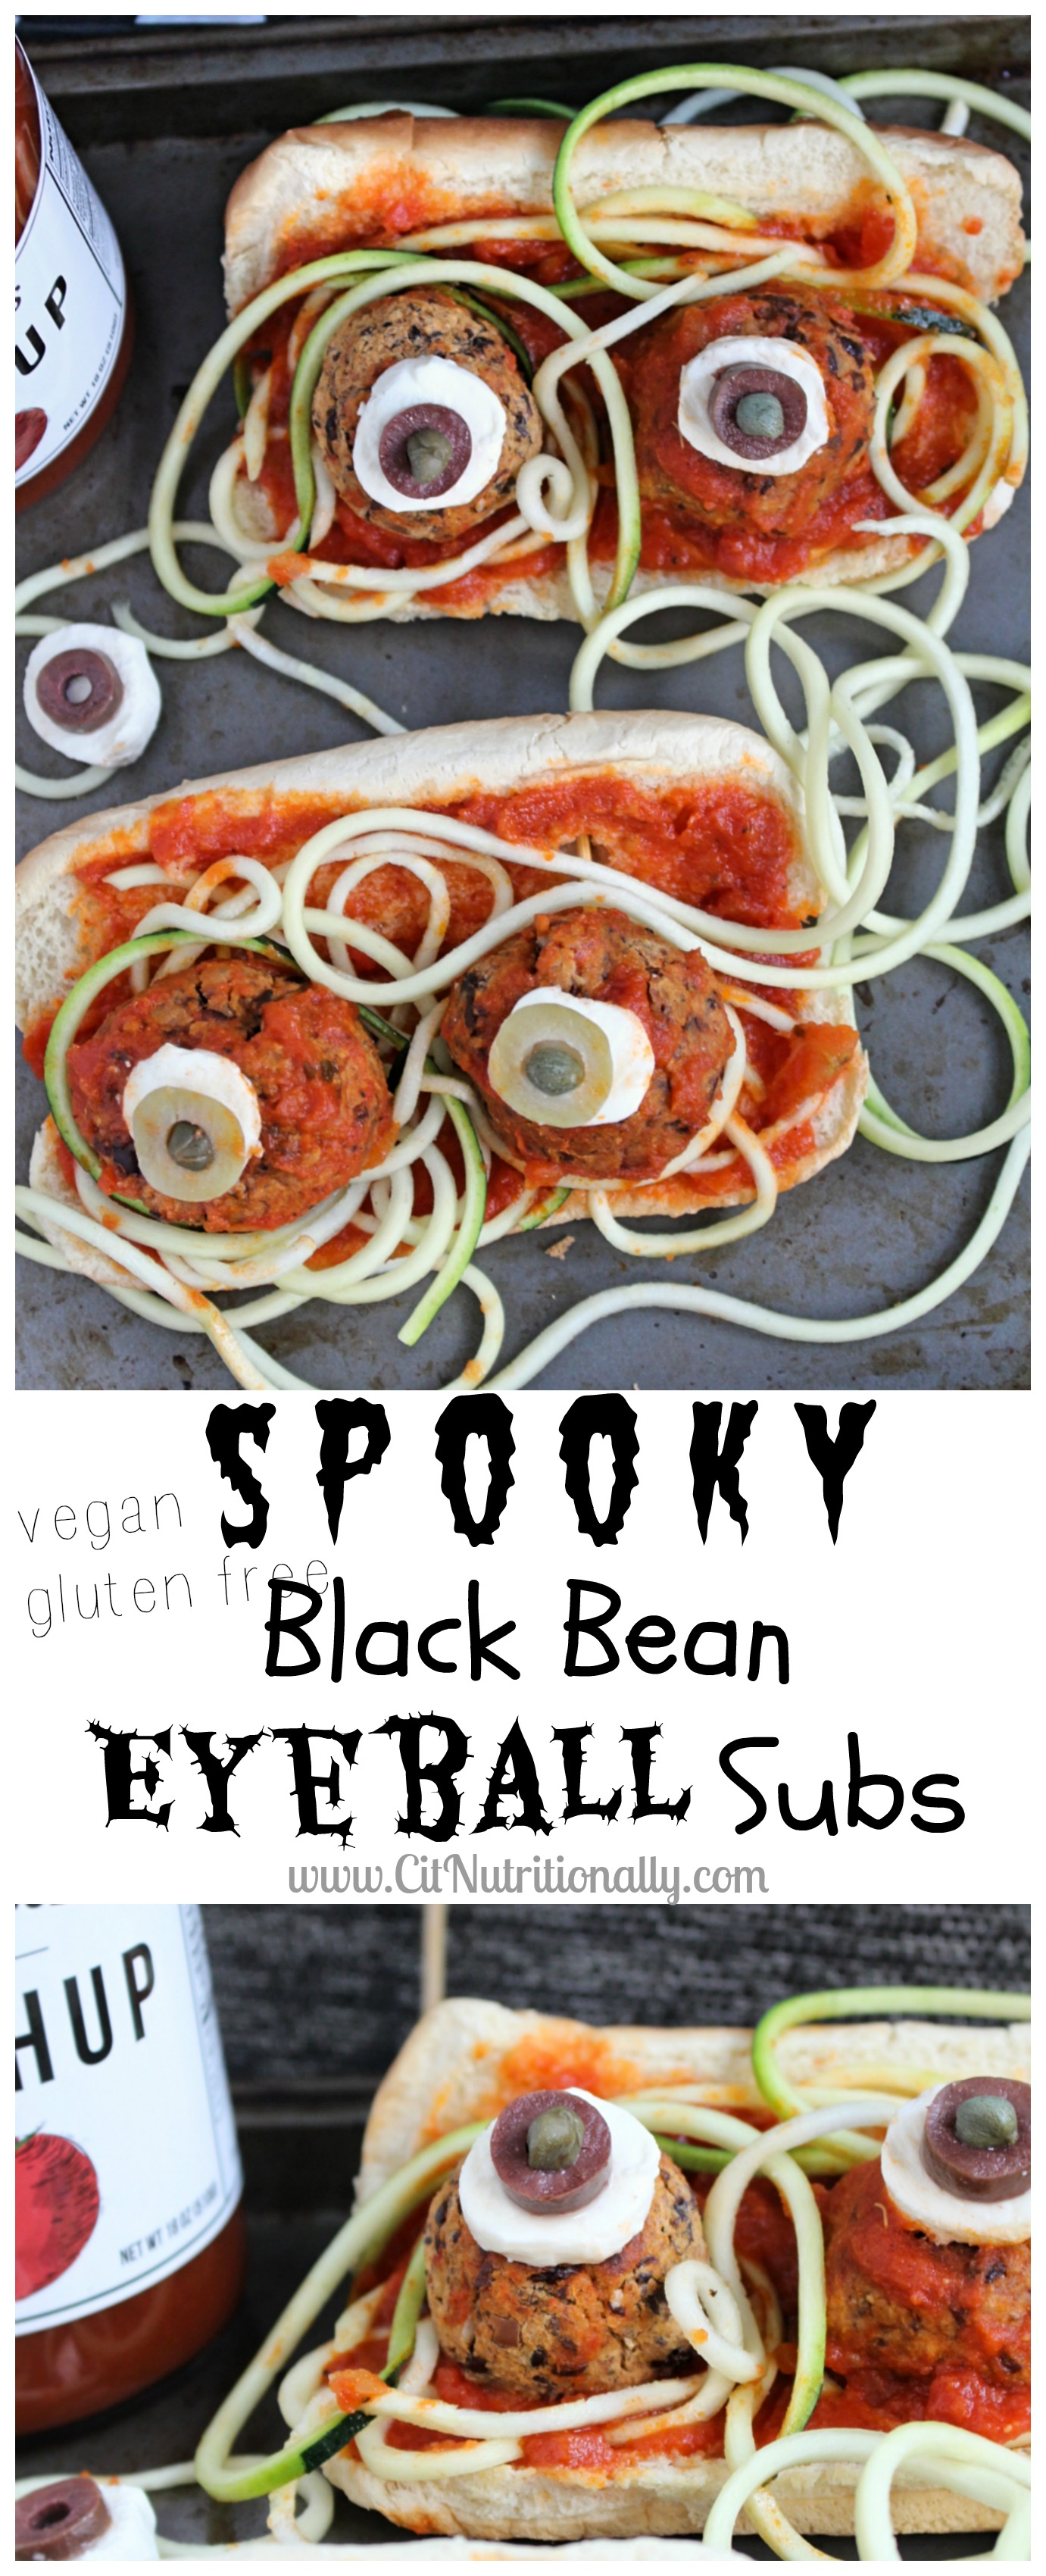 Spooky Black Bean Eyeball Subs | C it Nutritionally #sponsored